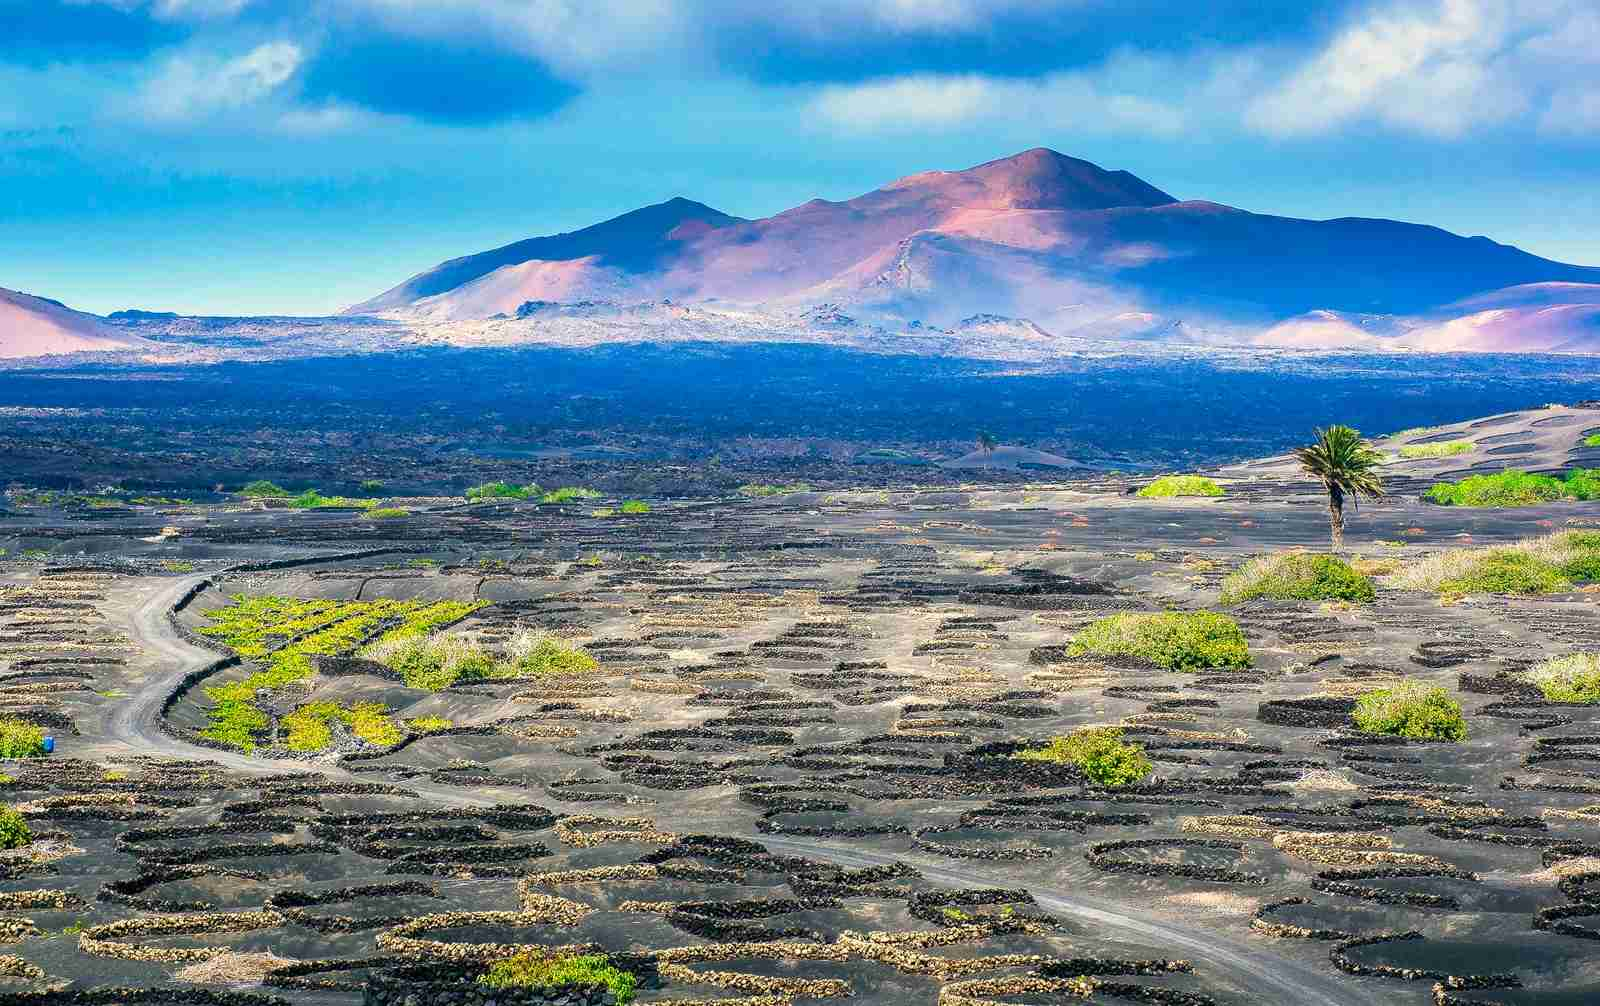 The Wine Valley of La Geria in Lanzarote. (Photo by Rott70 / Getty Images)